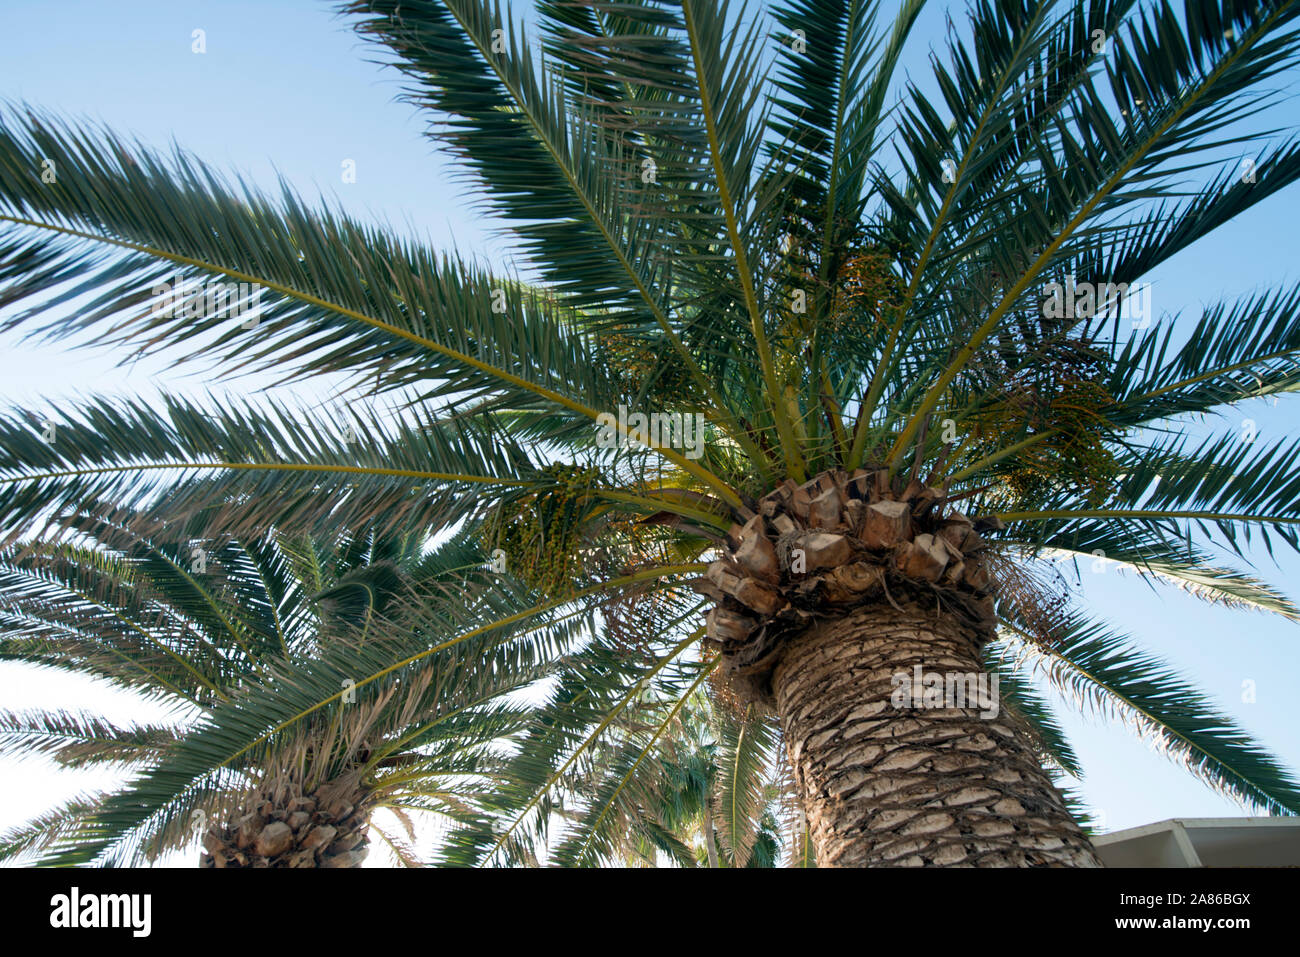 CYPRUS- Arecaceae are a botanical family of perennial plants. Their growth form can be climbers, shrubs, tree-like and stemless plants. Stock Photo